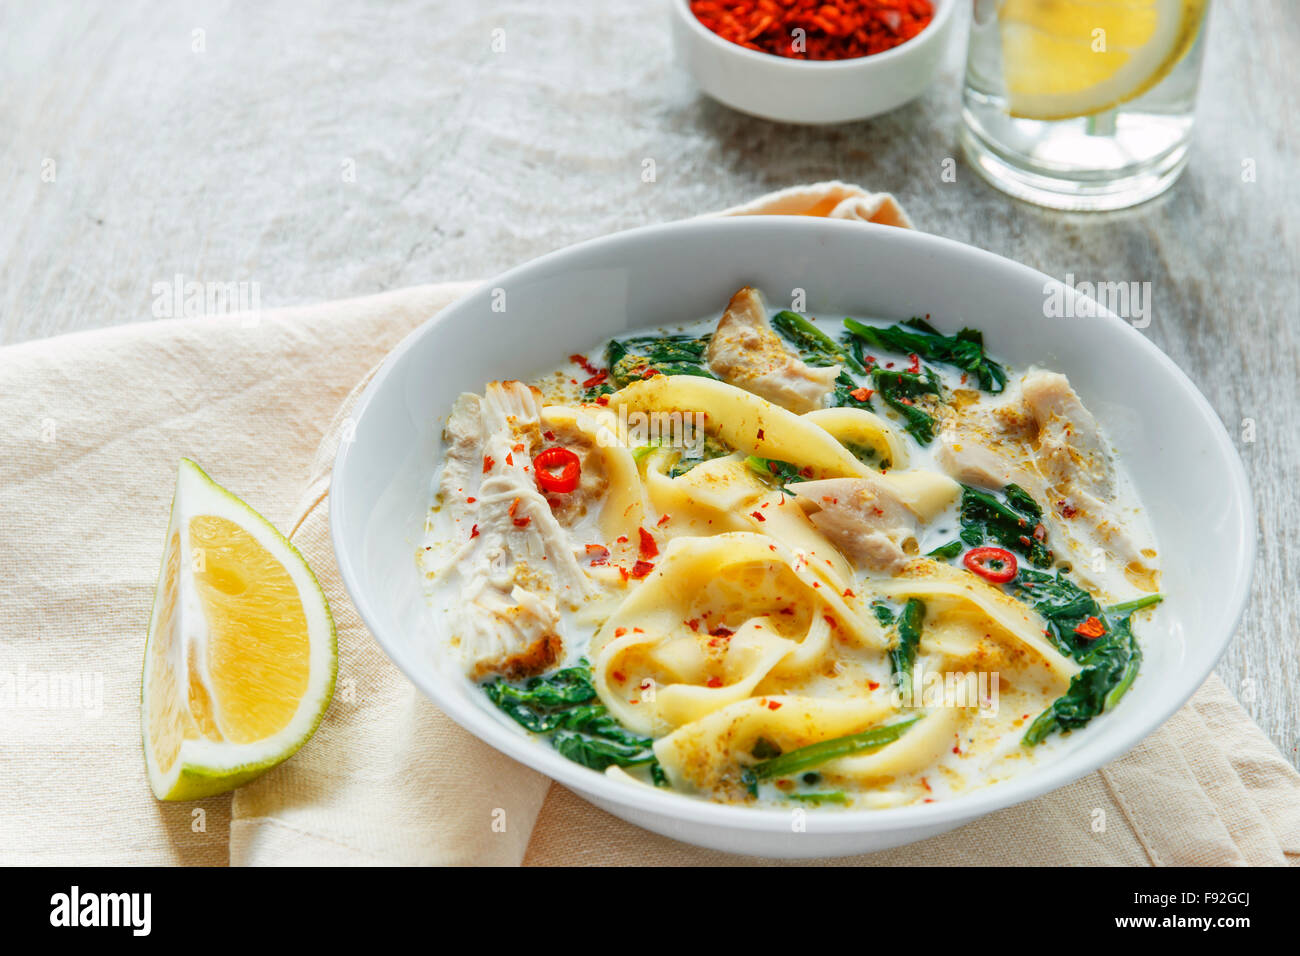 Coconut Curry Chicken Soup with noodles in a plate - Stock Image